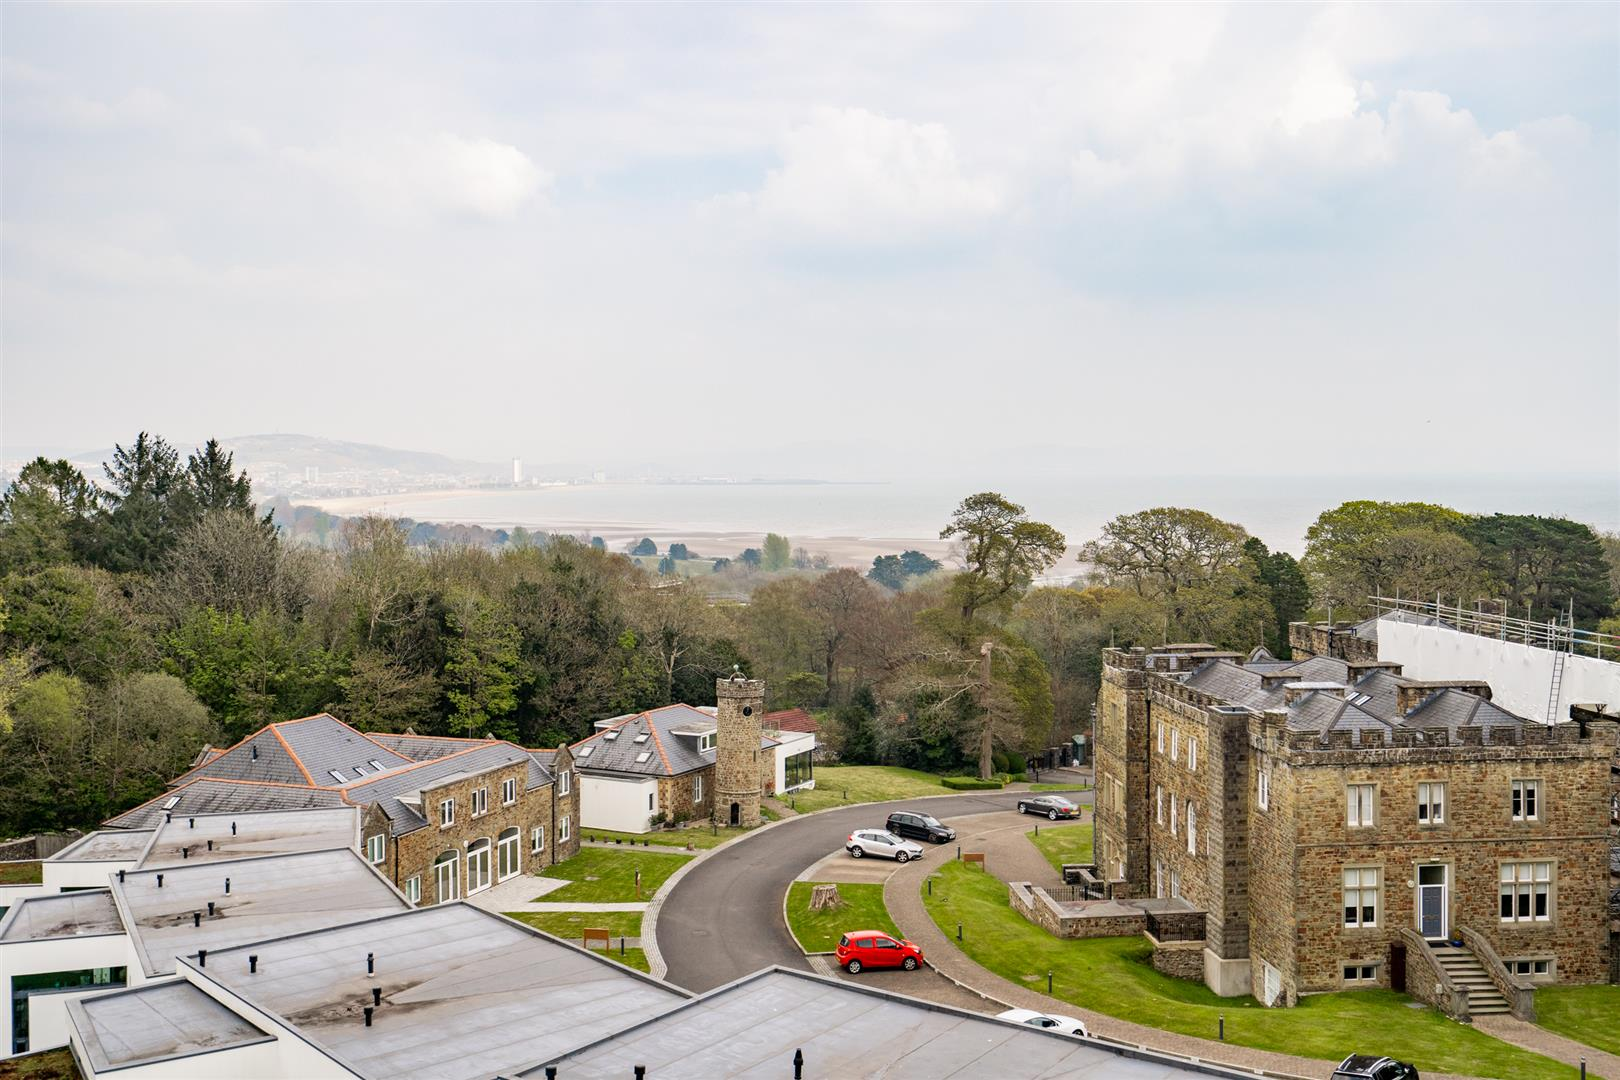 Upper Castle View, Blackpill, Swansea, SA3 5BY